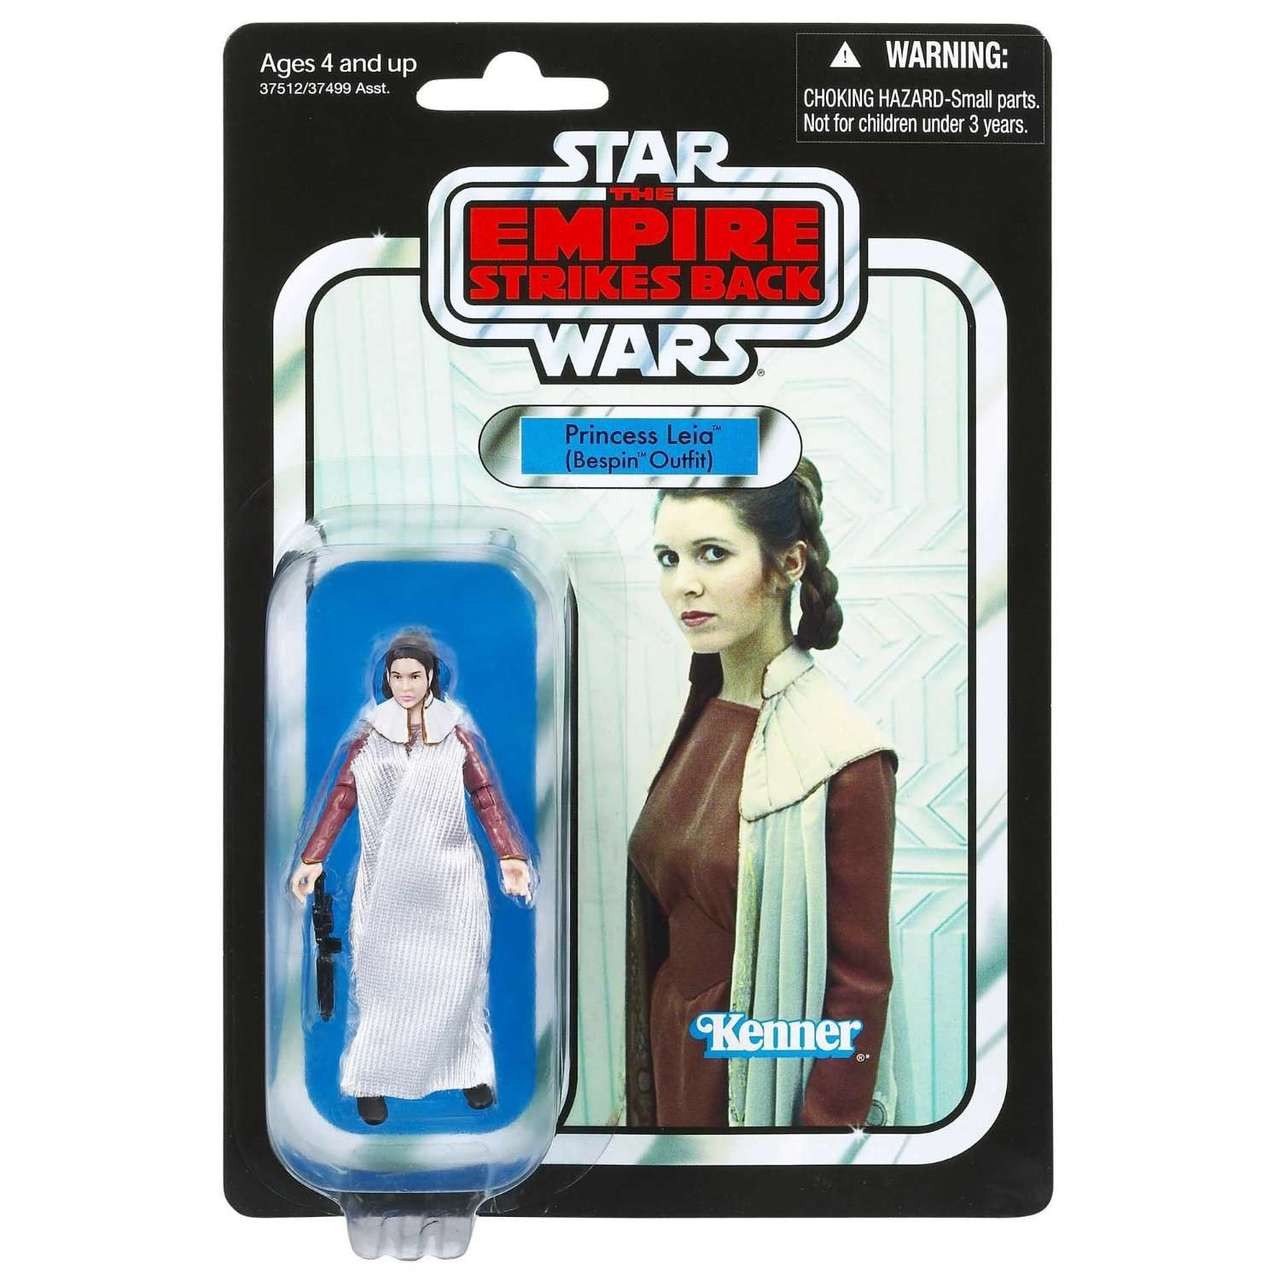 Star Wars Empire Strikes Back Vintage Collection 2012 Princess Leia Action Figure #111 [Bespin Outfit]